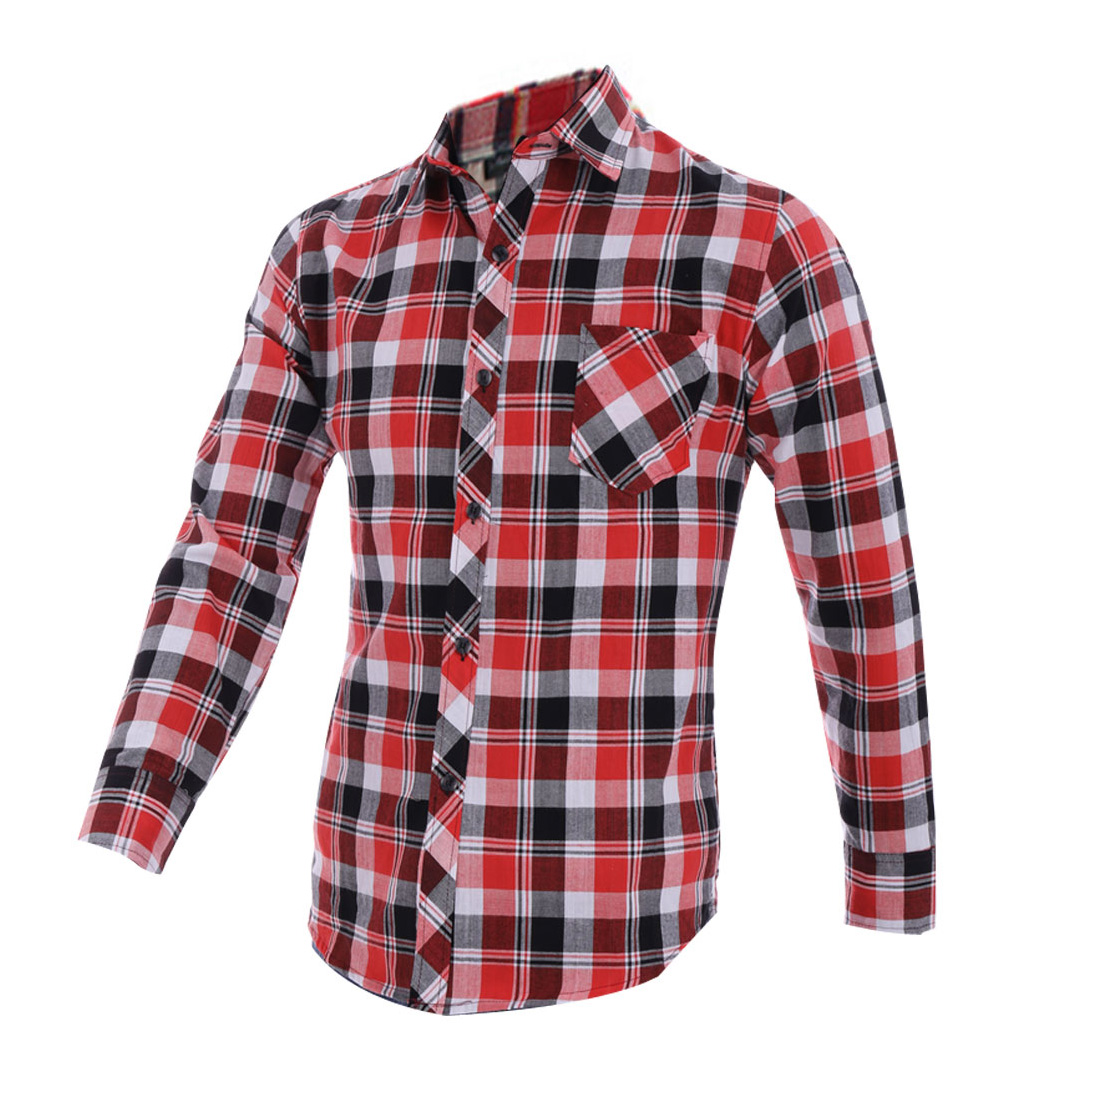 Man Red Plaid Print Long Sleeve Single Breast Pocket Button Up Shirt M